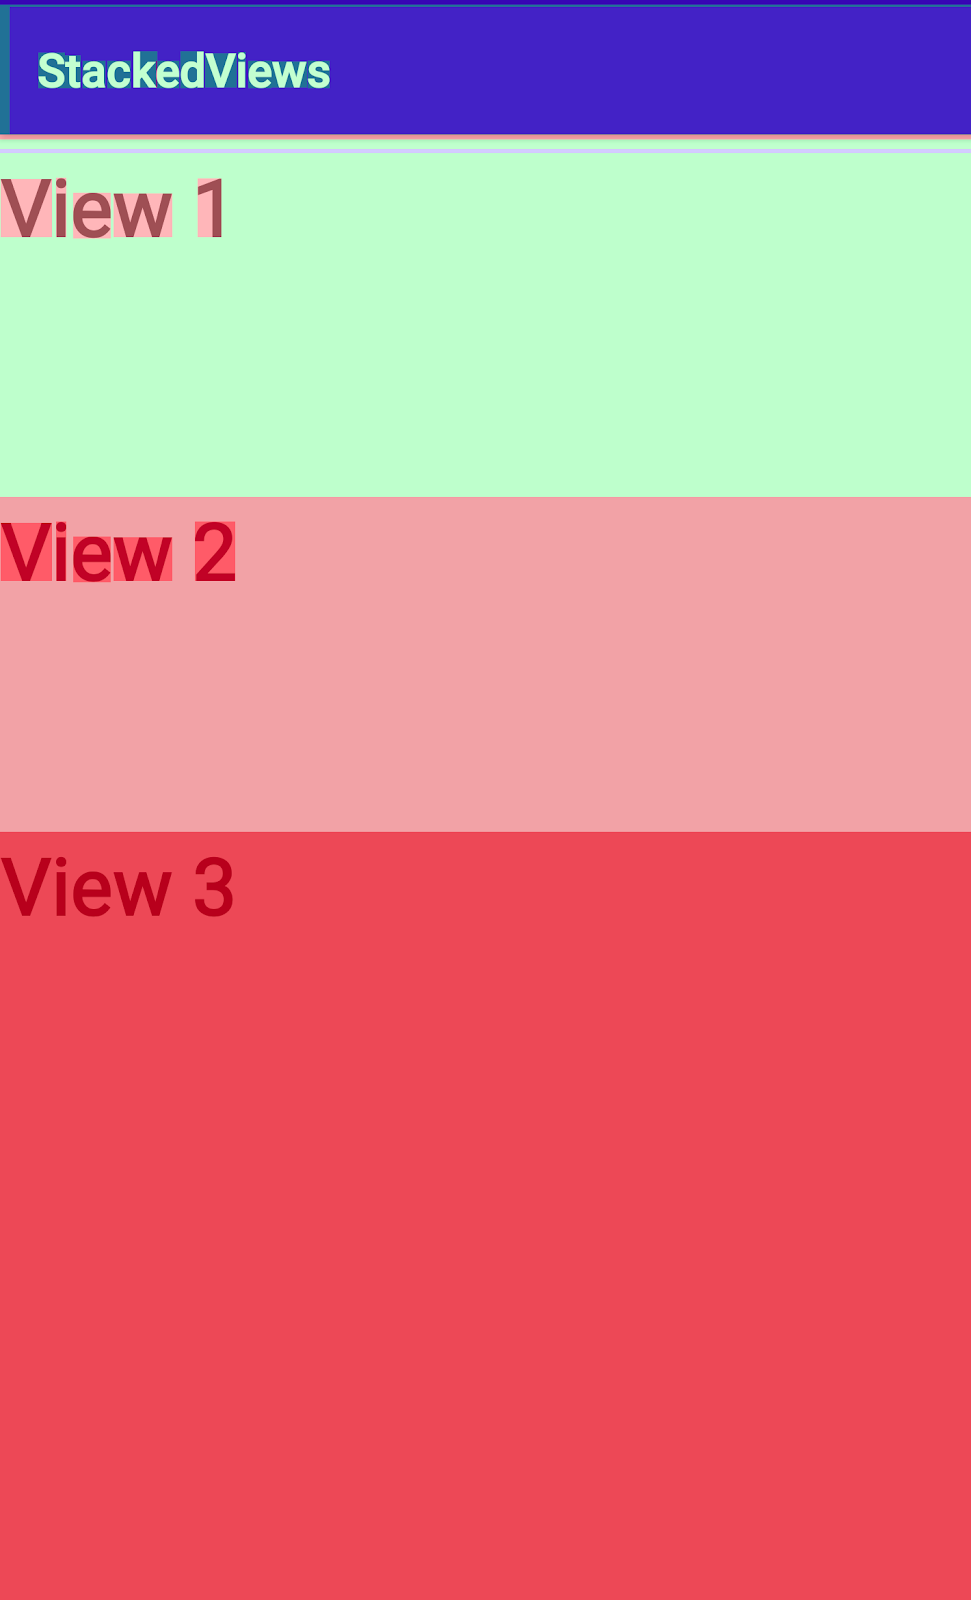 Demo app with stacked views to show overdraw.